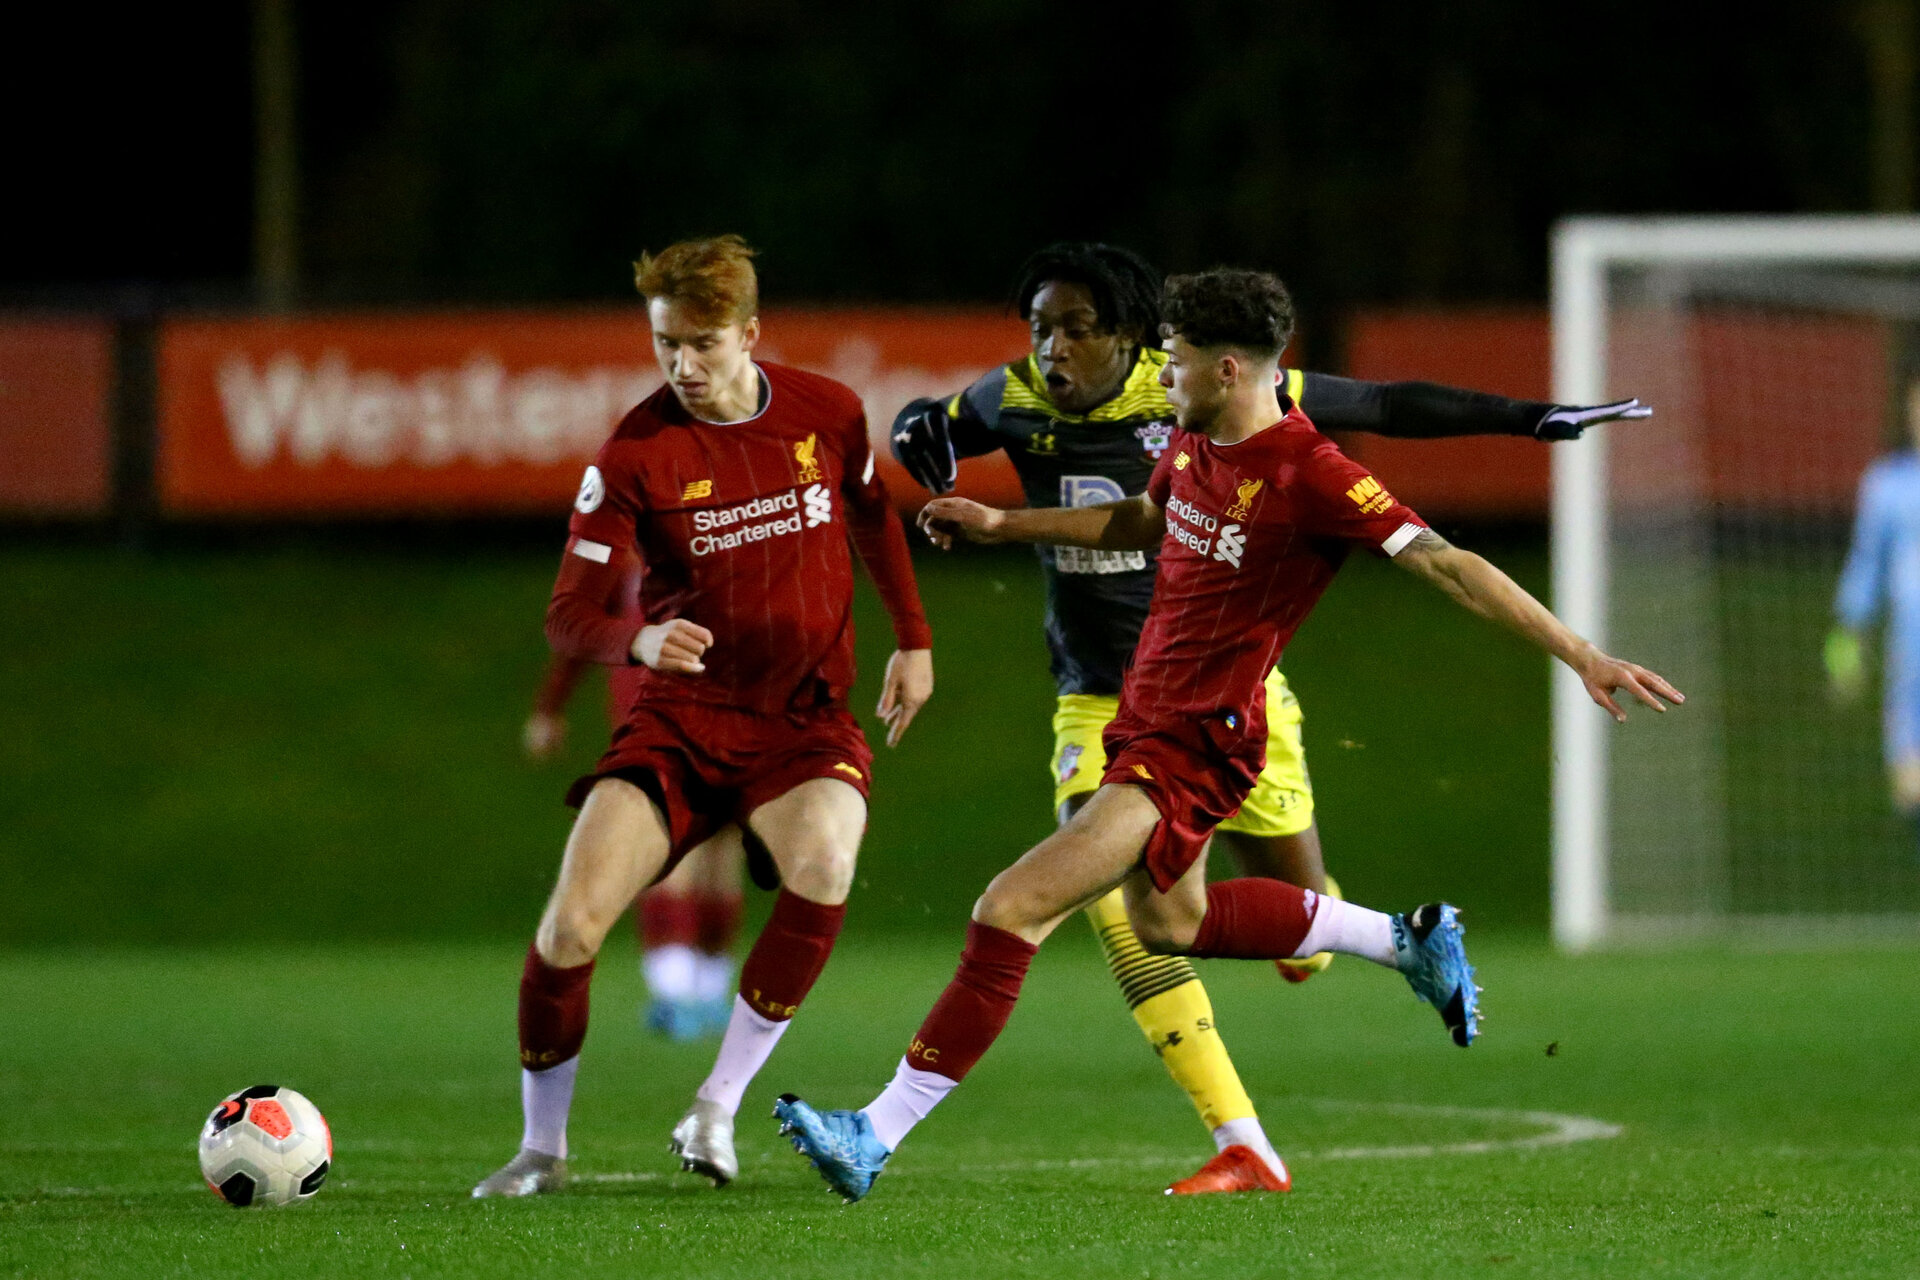 LIVERPOOL, ENGLAND - JANUARY 13: of Southampton during PL2 match between Liverpool and Southampton at Liverpool Academy on January 13 2020 in Liverpool England (Photo by Isabelle Field/Southampton FC via Getty Images)